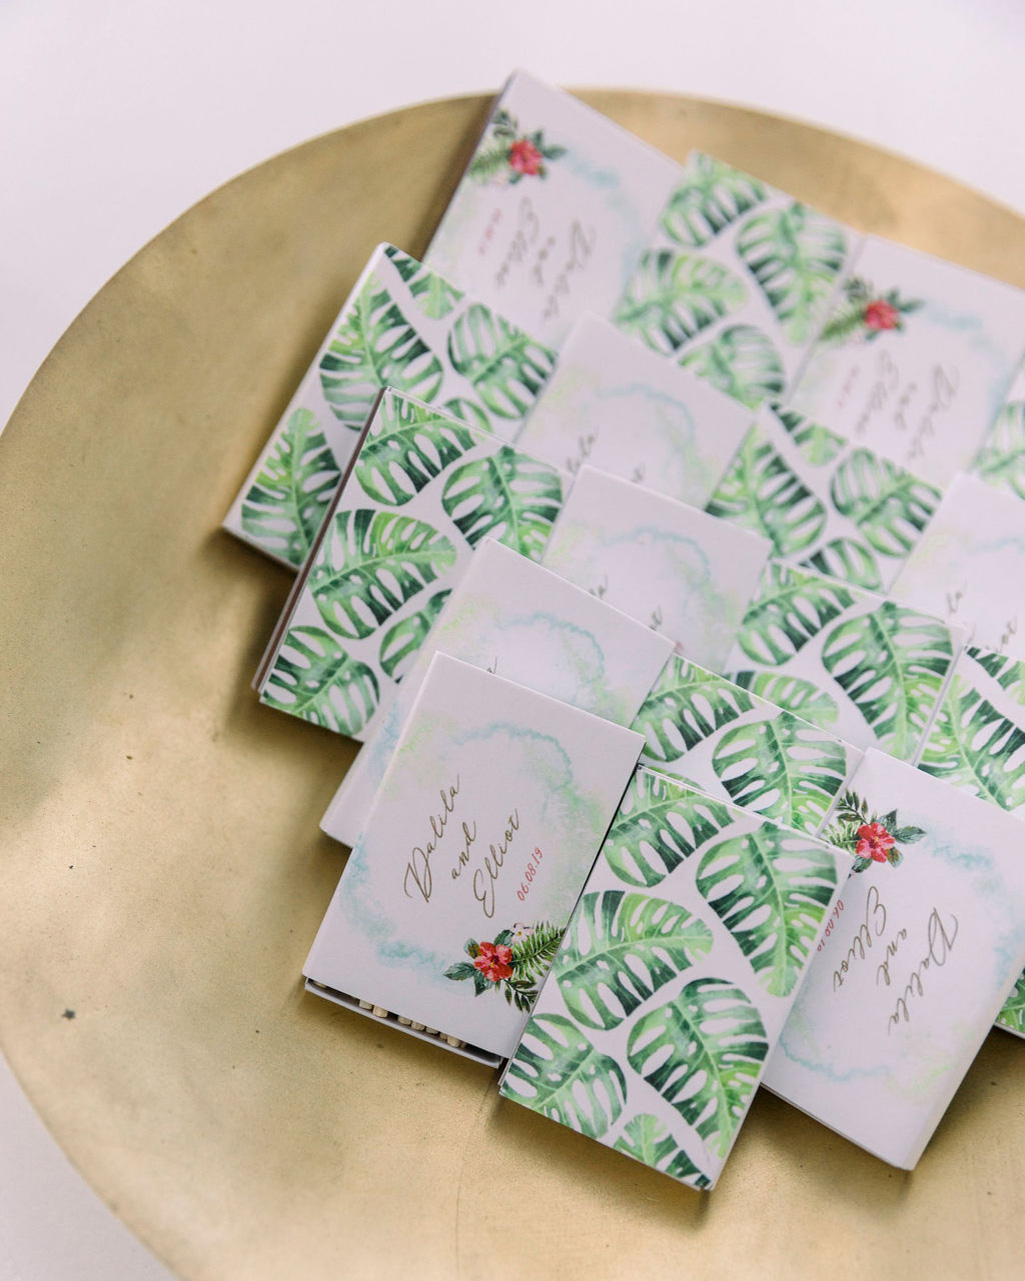 dalila elliot wedding programs with tropical designs